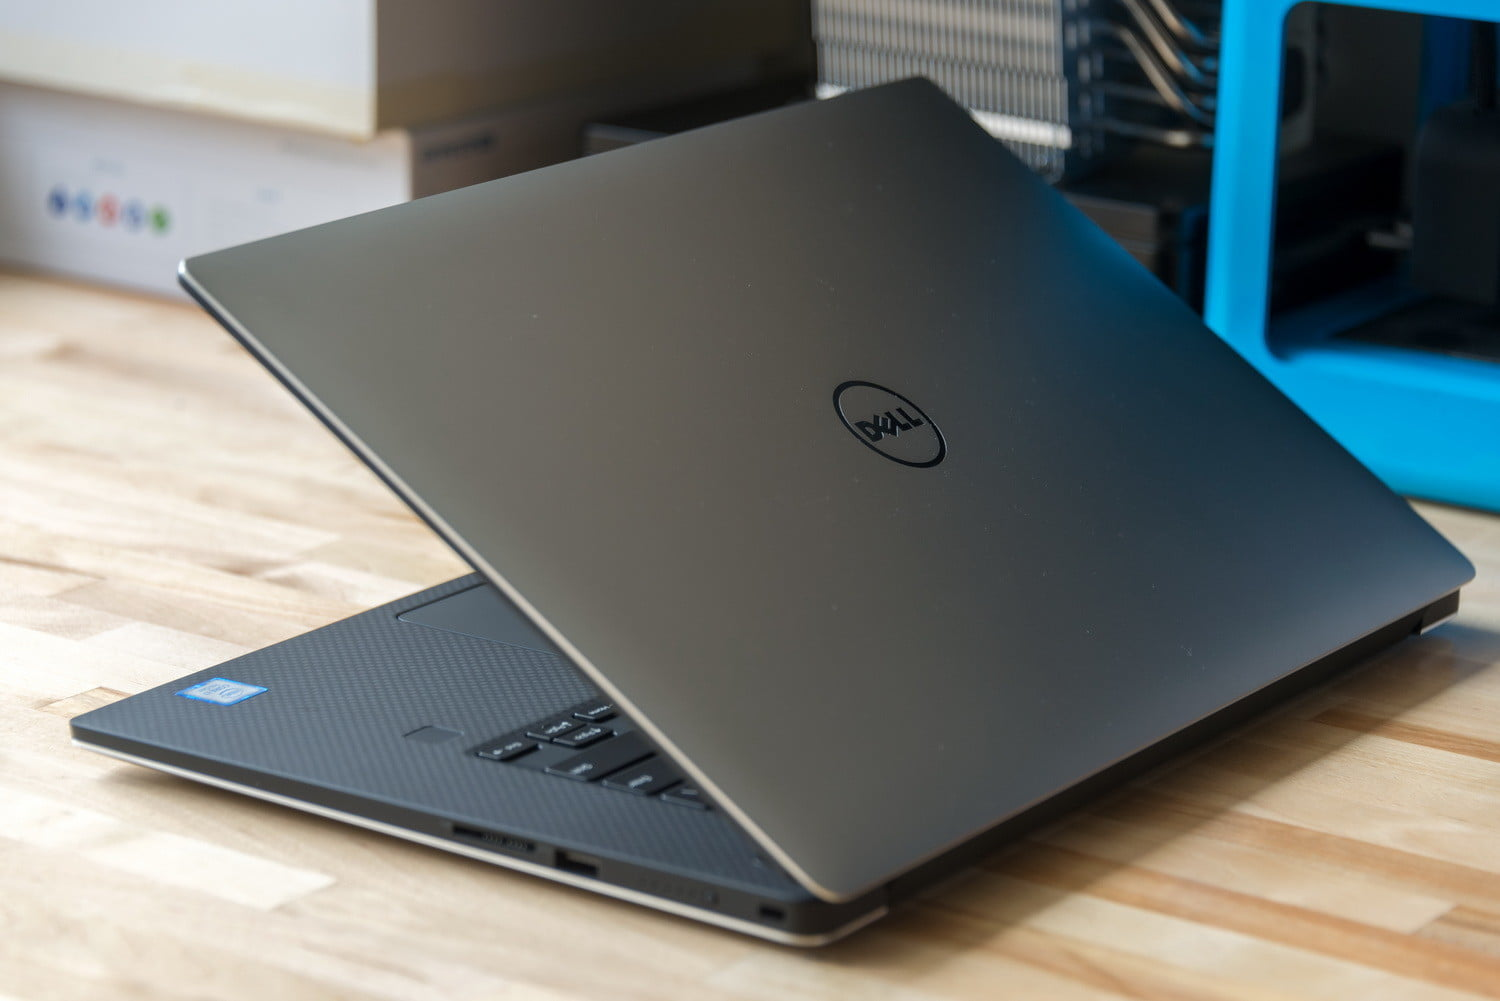 Get a New OLED Dell XPS 15 For Over $400 Off With This Code